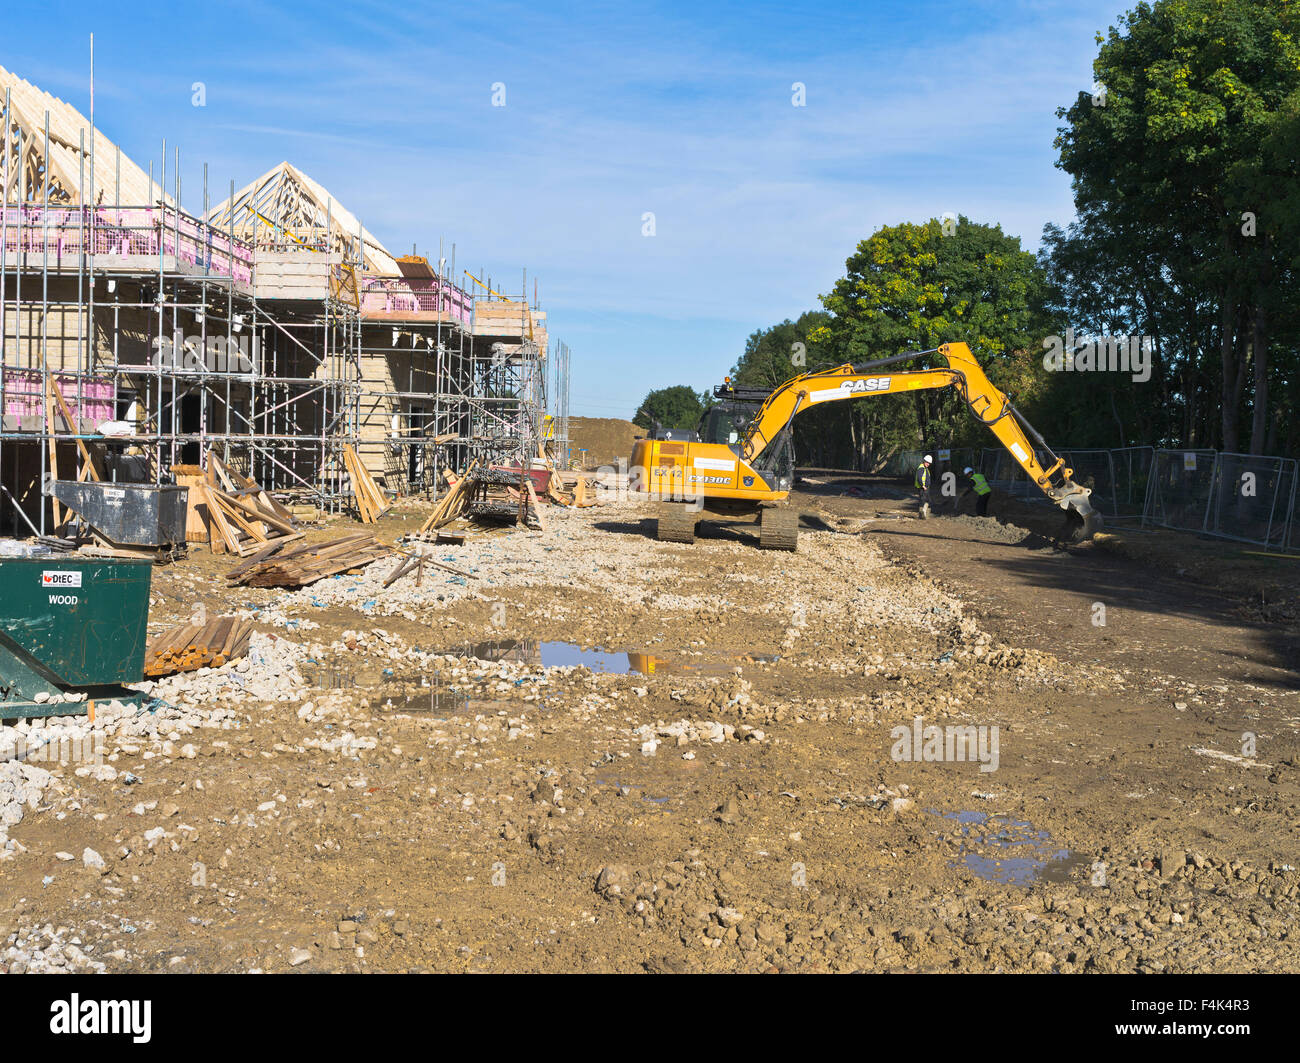 dh redrow homes uk new houses uk construction site